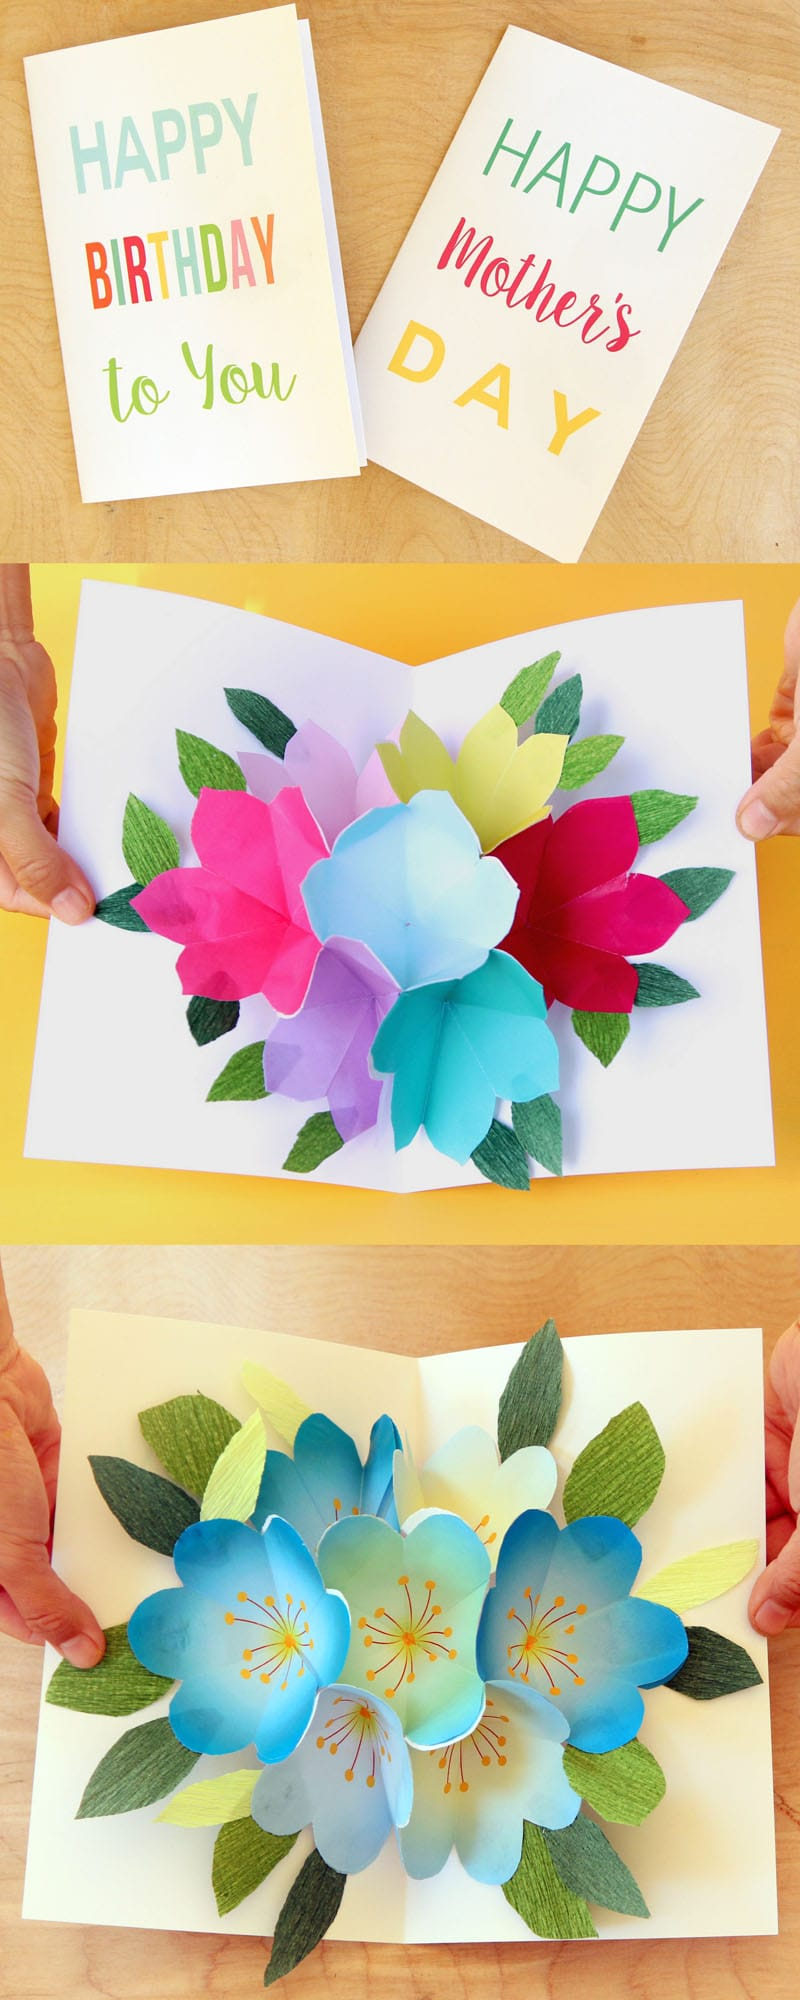 You Can Make This Easy And Free Printable Birthday Card In Less Than An Hour Oh The Best Part A Big Bouquet Pops Right Out When Your Loved One Opens